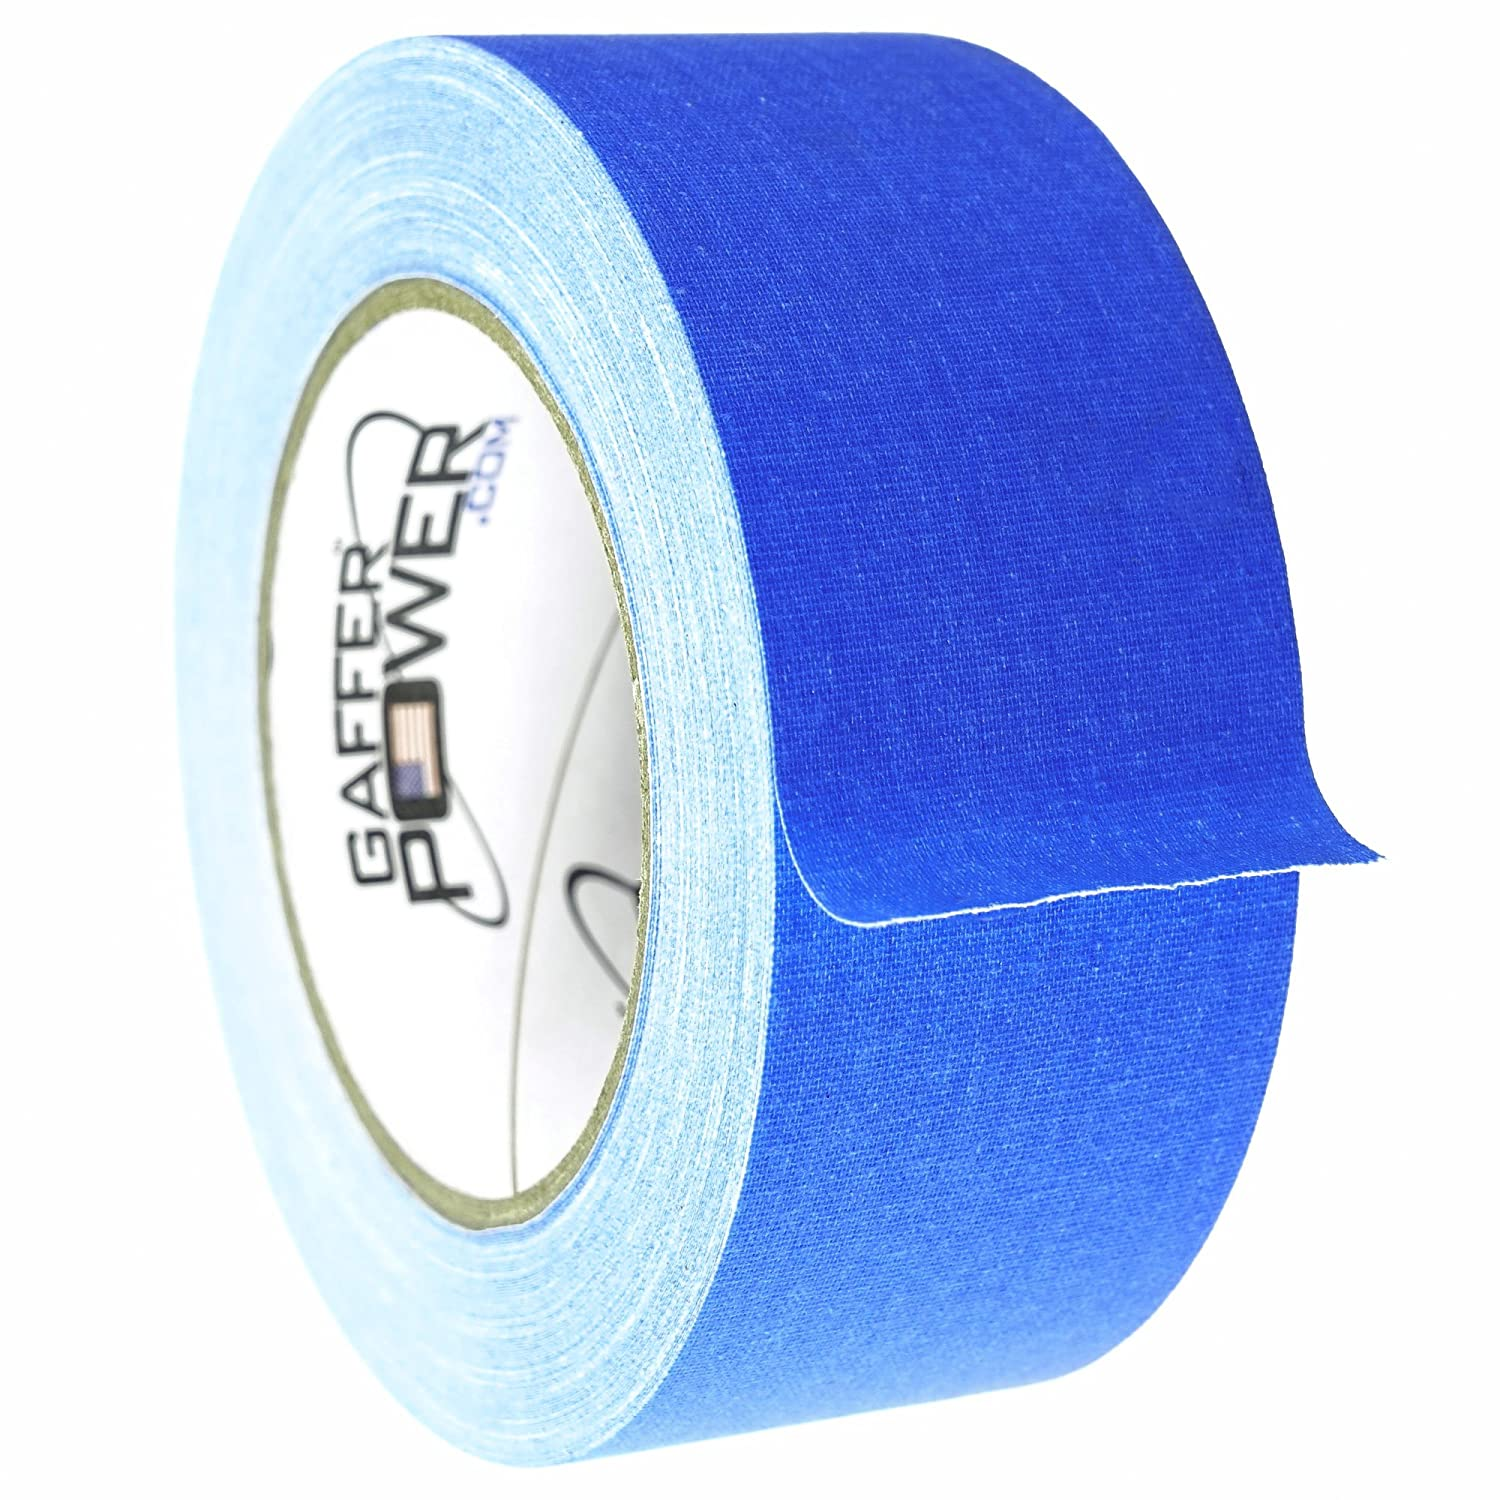 Real Professional Grade Gaffer Tape by Gaffer Power,- Made in The USA, Electric Blue- 2 Inches X 30 Yards, Heavy Duty Gaffers Tape, Non-Reflective, Multipurpose, Better Than Duct Tape.